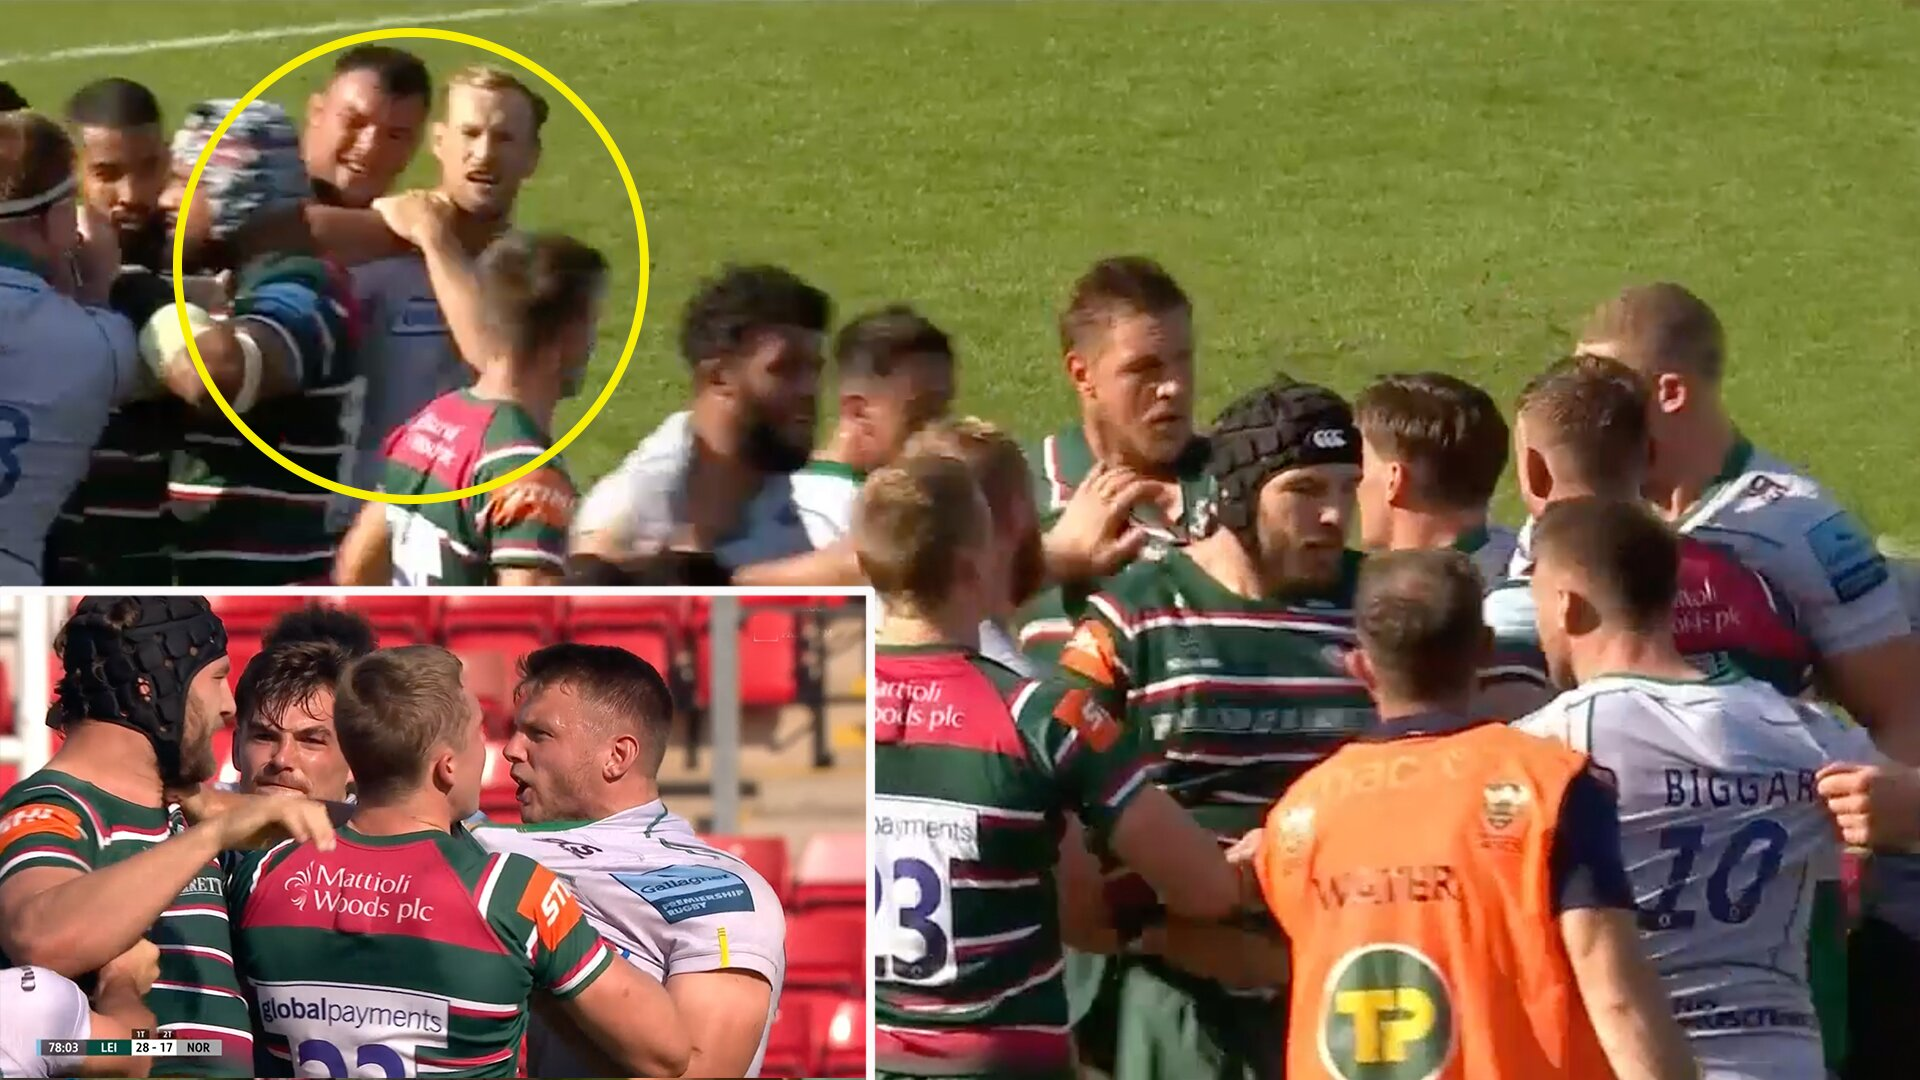 'You want a kiss mate?' Bizarre scenes at Welford Road as Leicester Tigers vs Northampton Saints ends in mass brawl